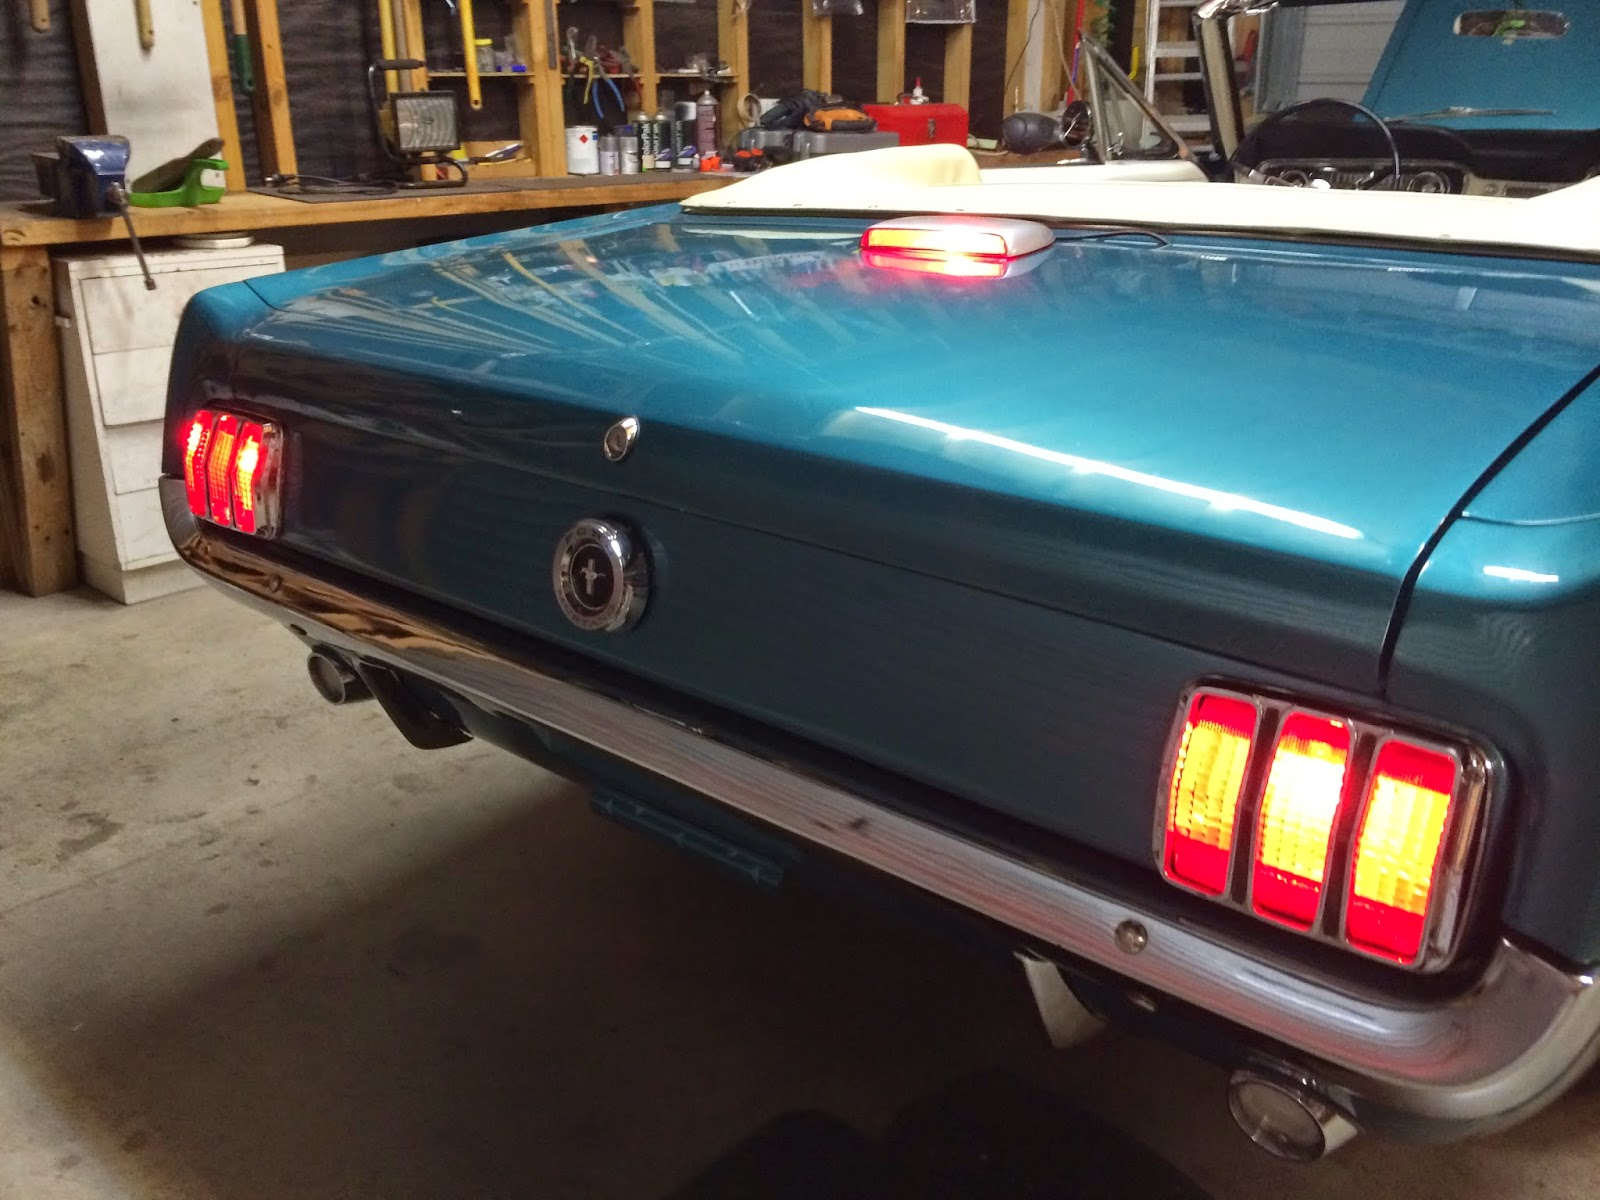 1965 convertible mustang restoration different versions of third later i came up with the idea of fitting a red led light strip that i bought on ebay and mounted it to the thin stainless strip behind the back seat aloadofball Gallery